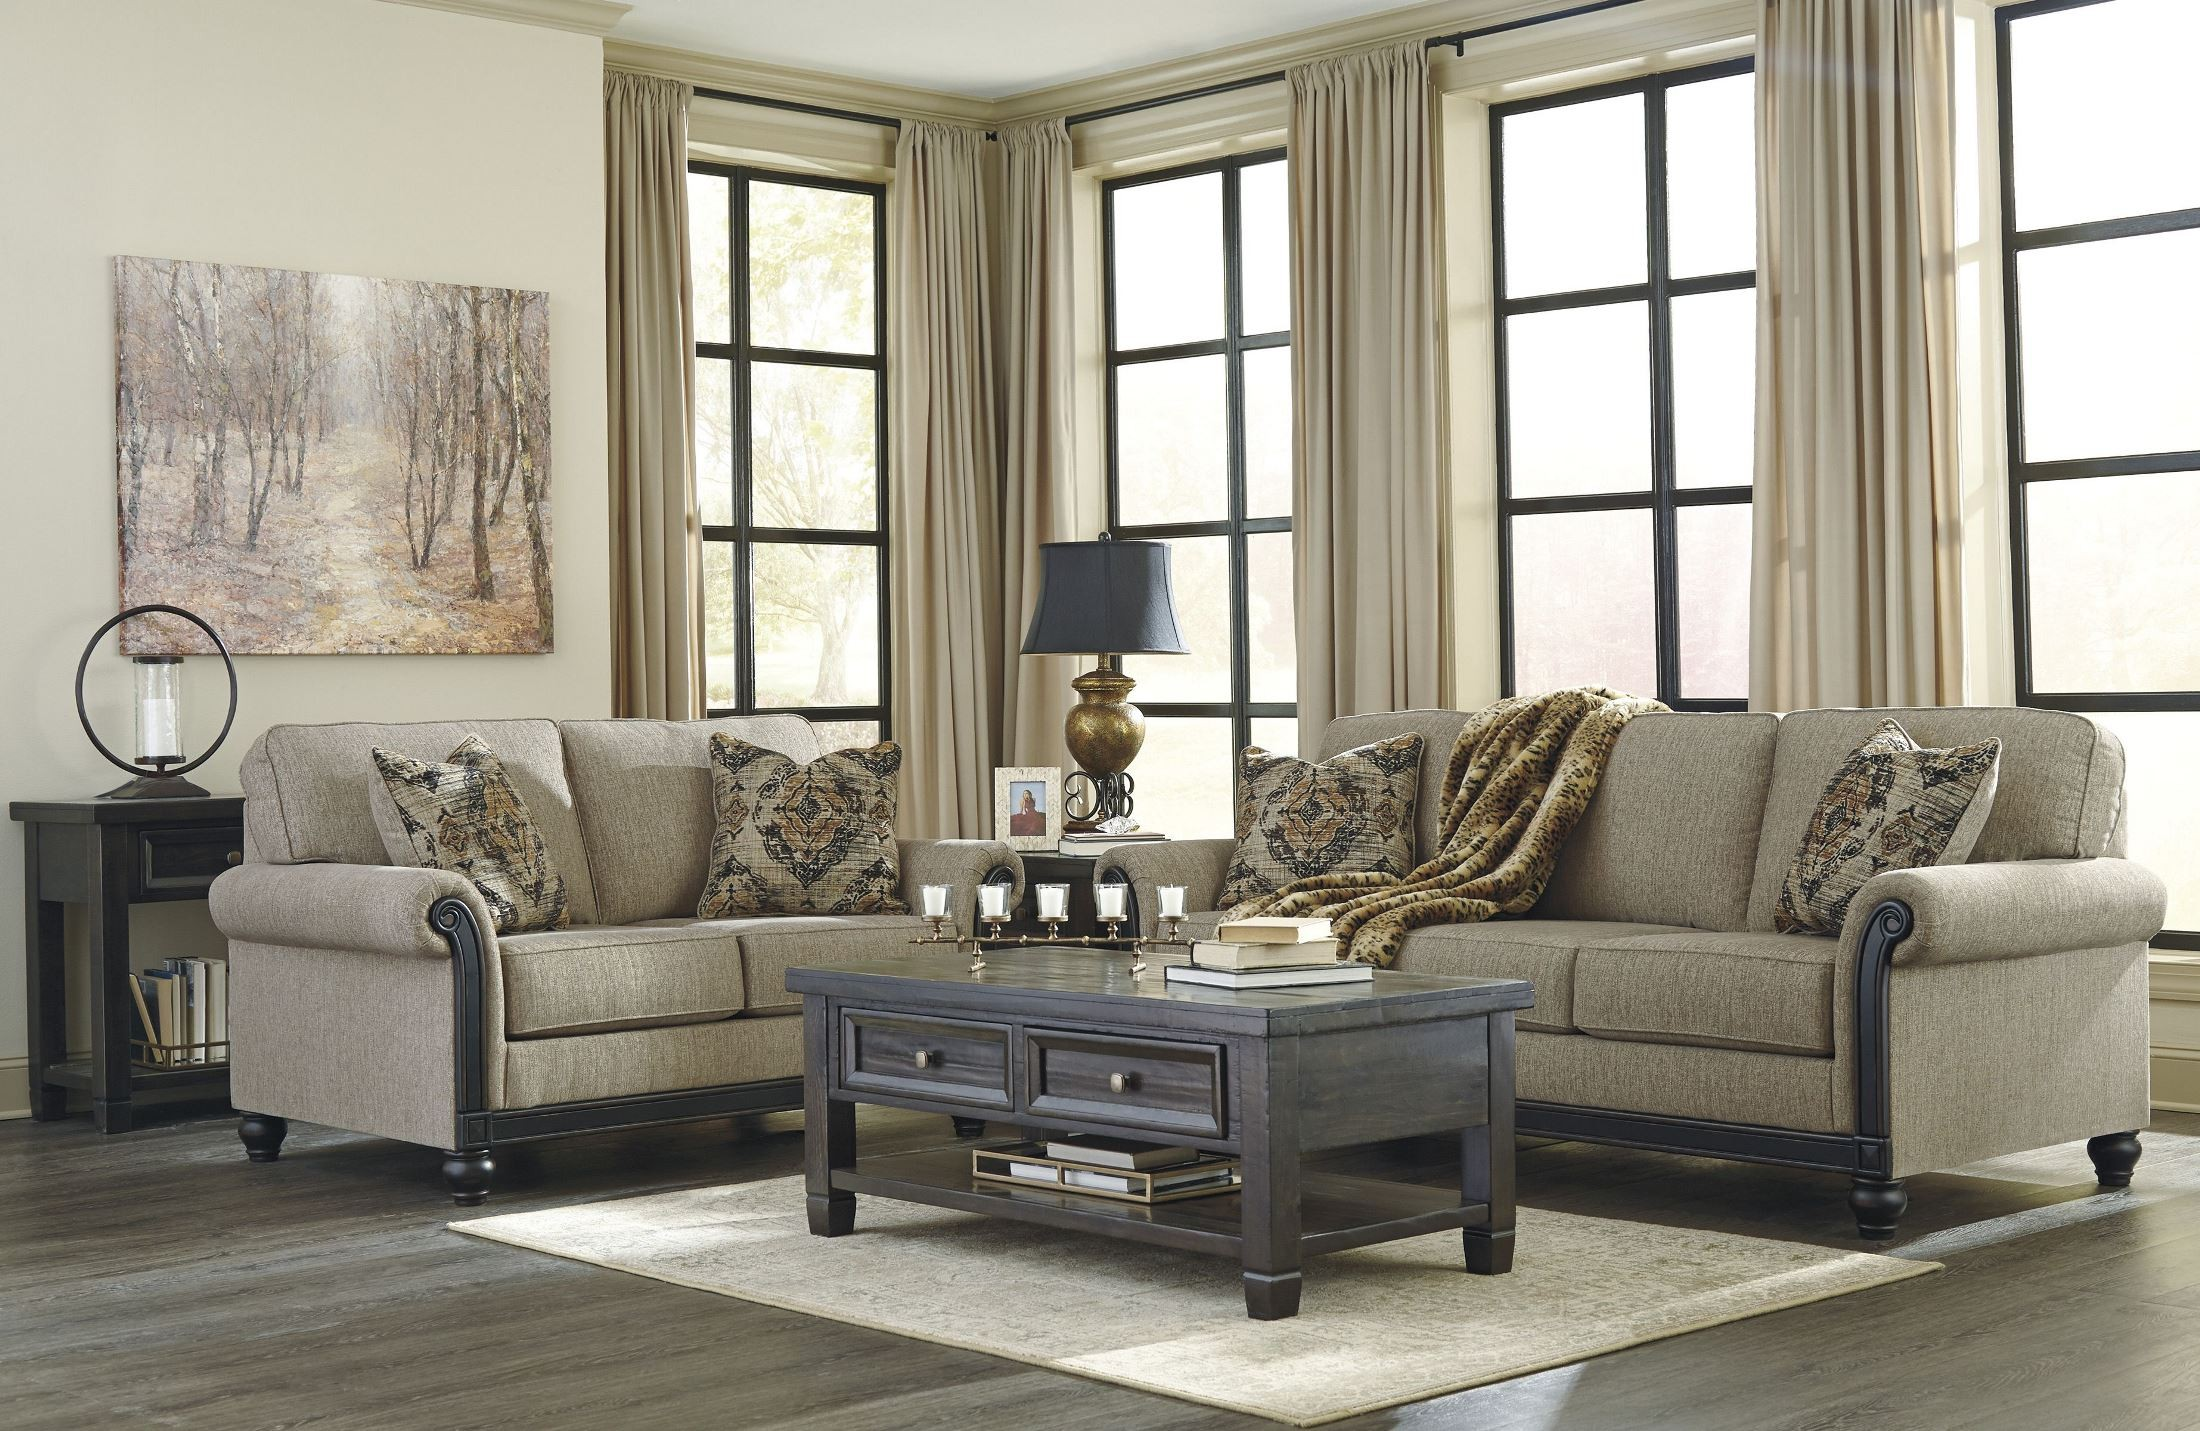 Sofa Taupe Blackwood Taupe Sofa 3350338 Ashley